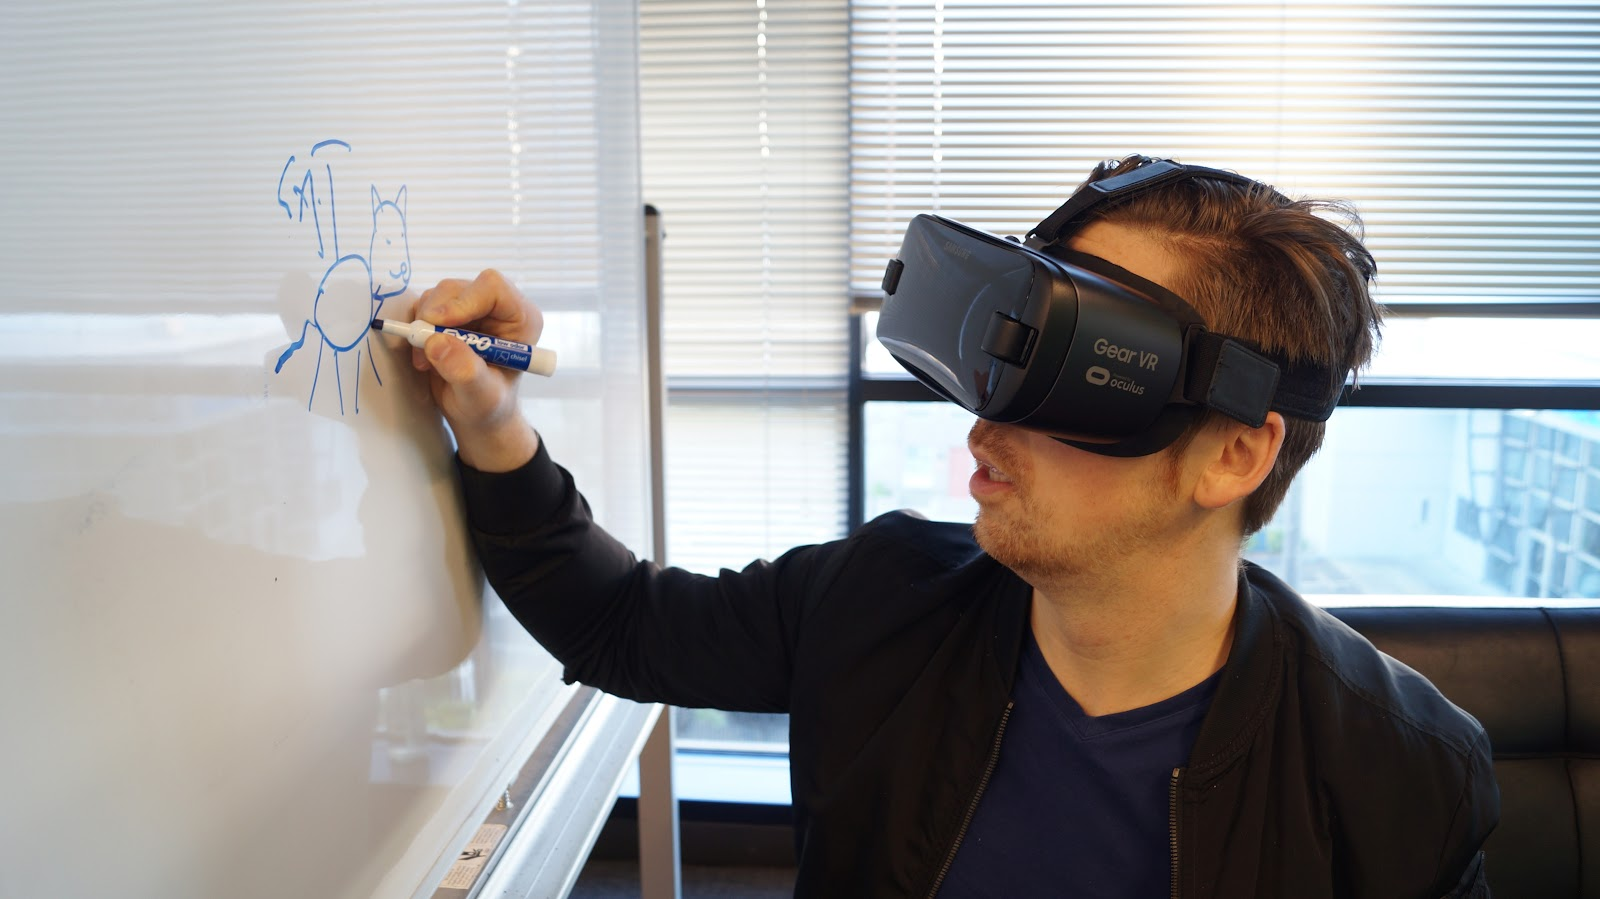 A person wearing VR goggles while drawing on a white board